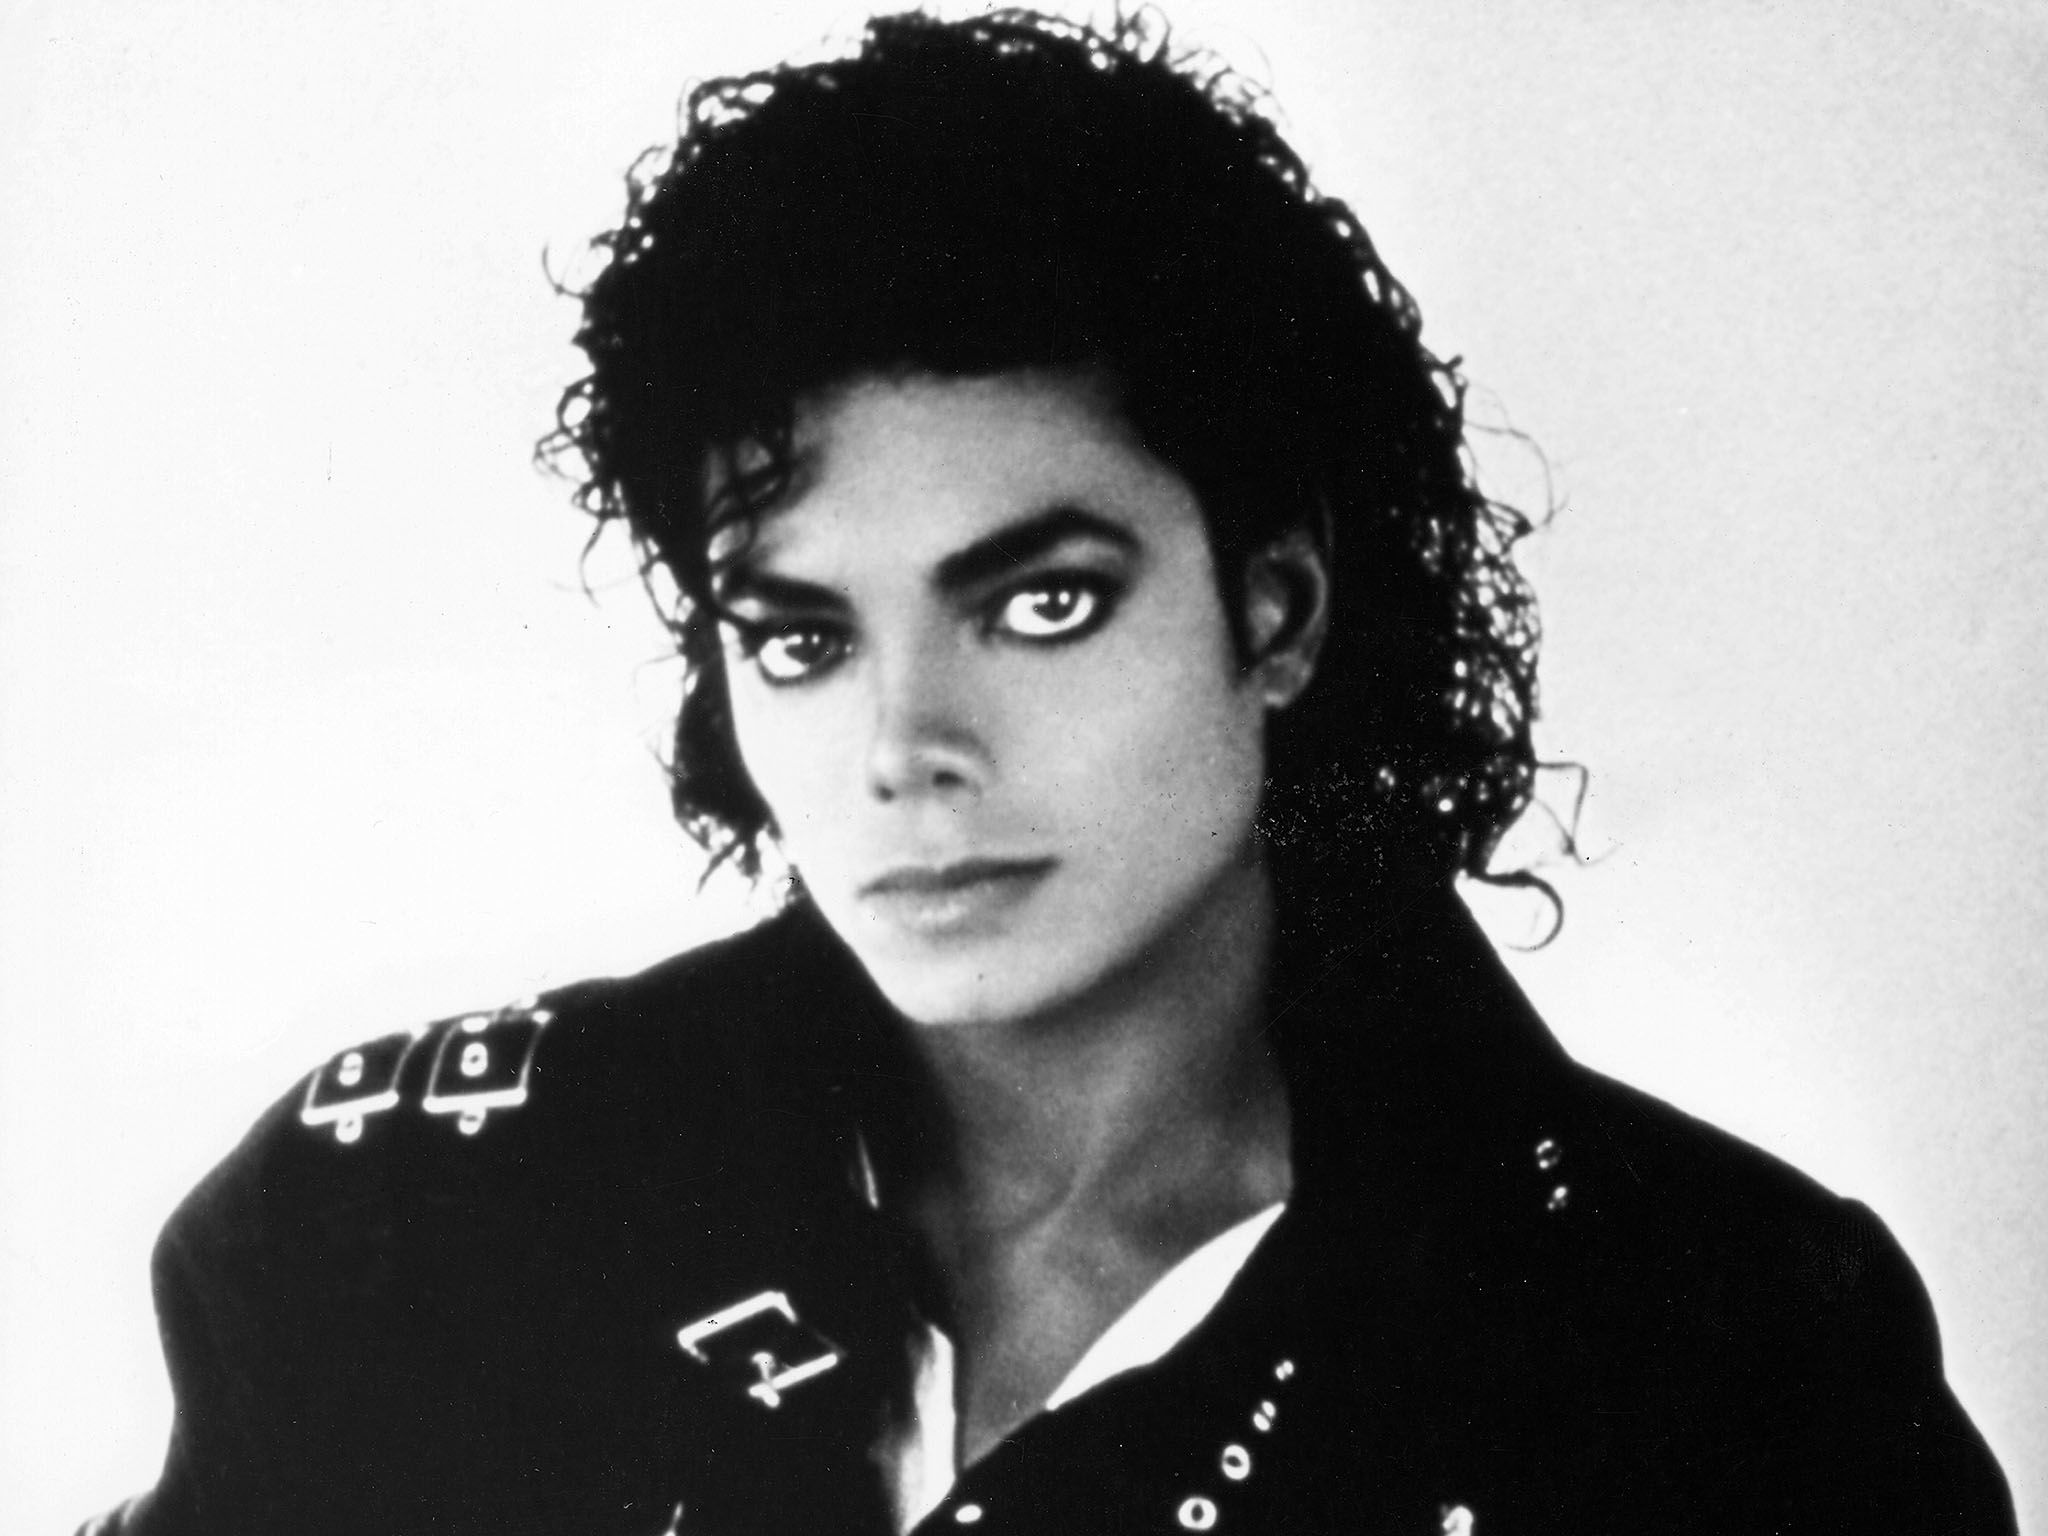 Michael Jackson in 1987. This image is from The 2000s Greatest Tragedies. [Photo of the day - August 2015]